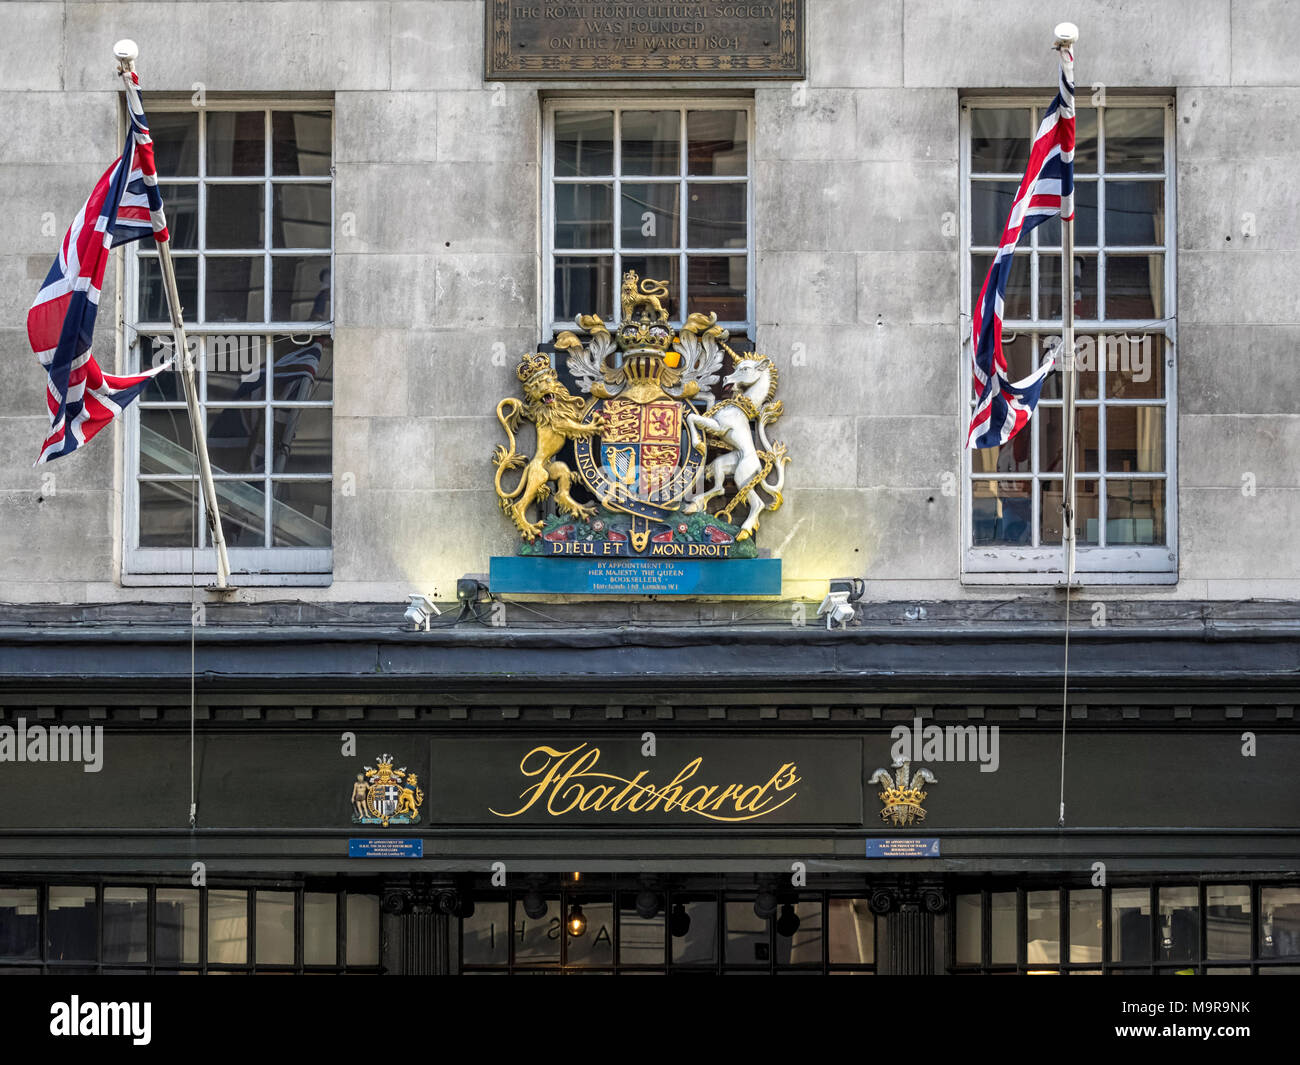 HATCHARD BOOKSELLERS:  Sign above the shop in Piccadilly showing By Royal Appointment Coat of Arms - Stock Image